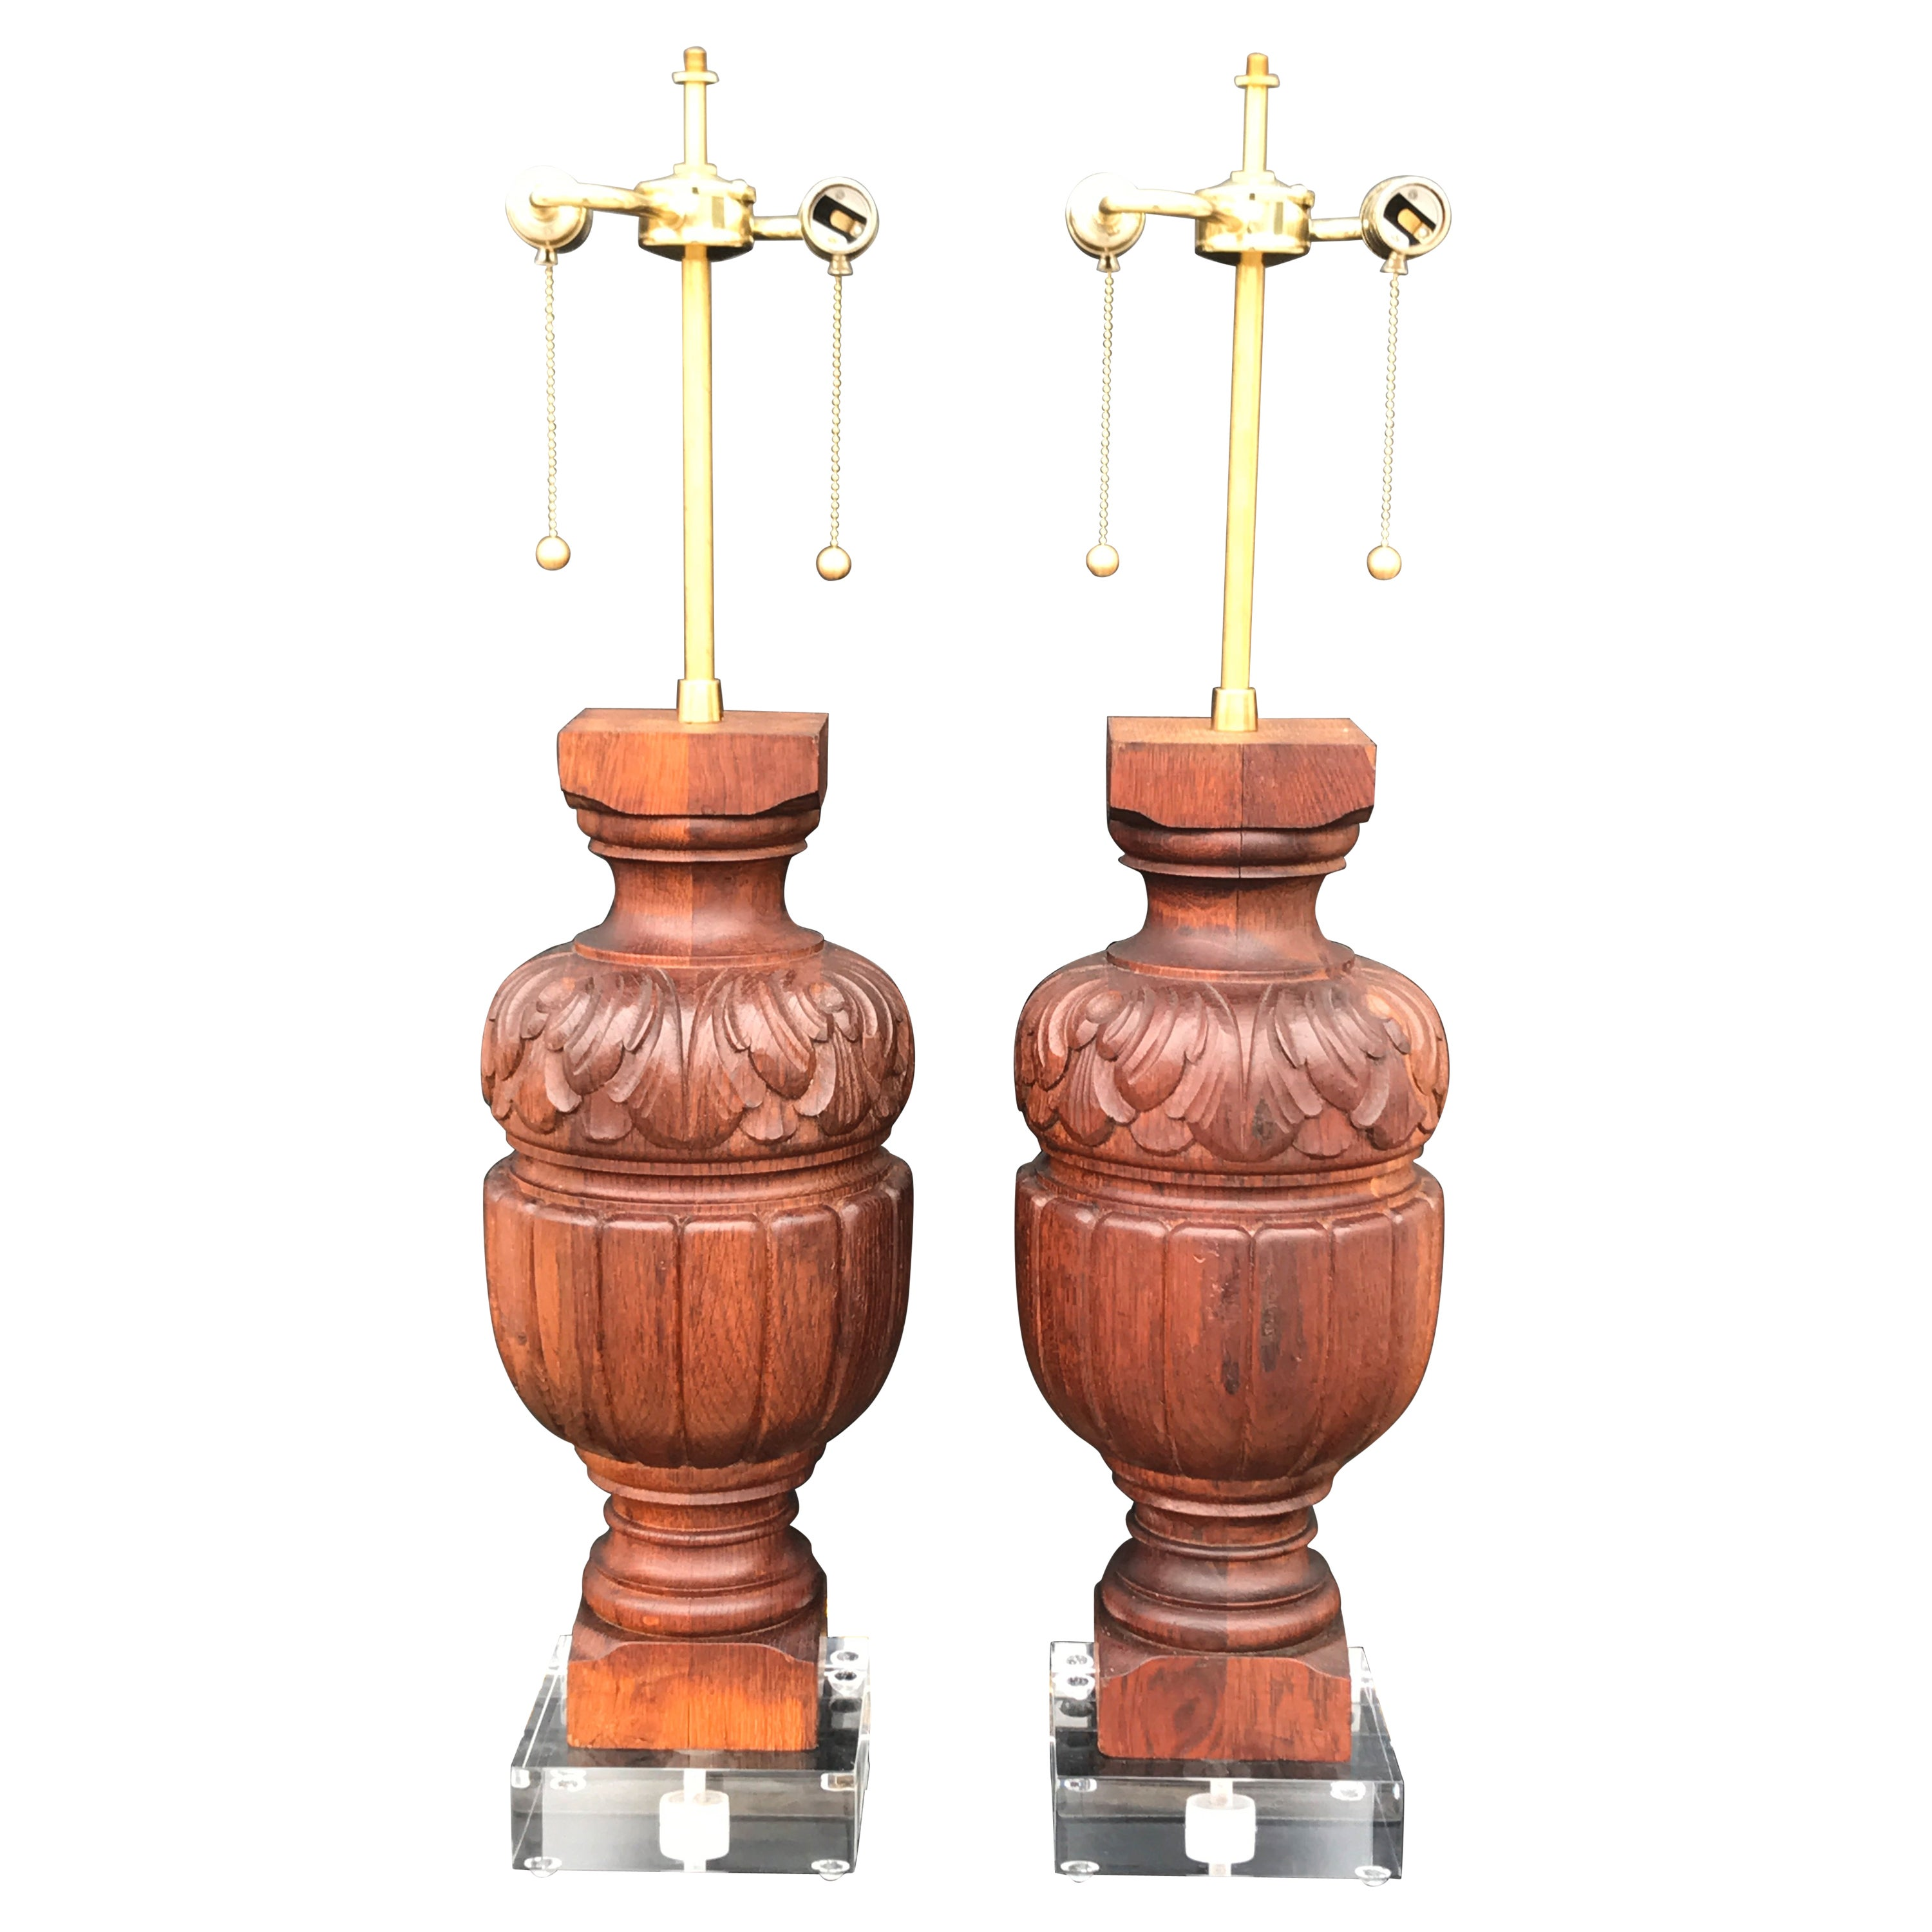 Pair of Architectural Baluster Fragments Mounted as Lamps